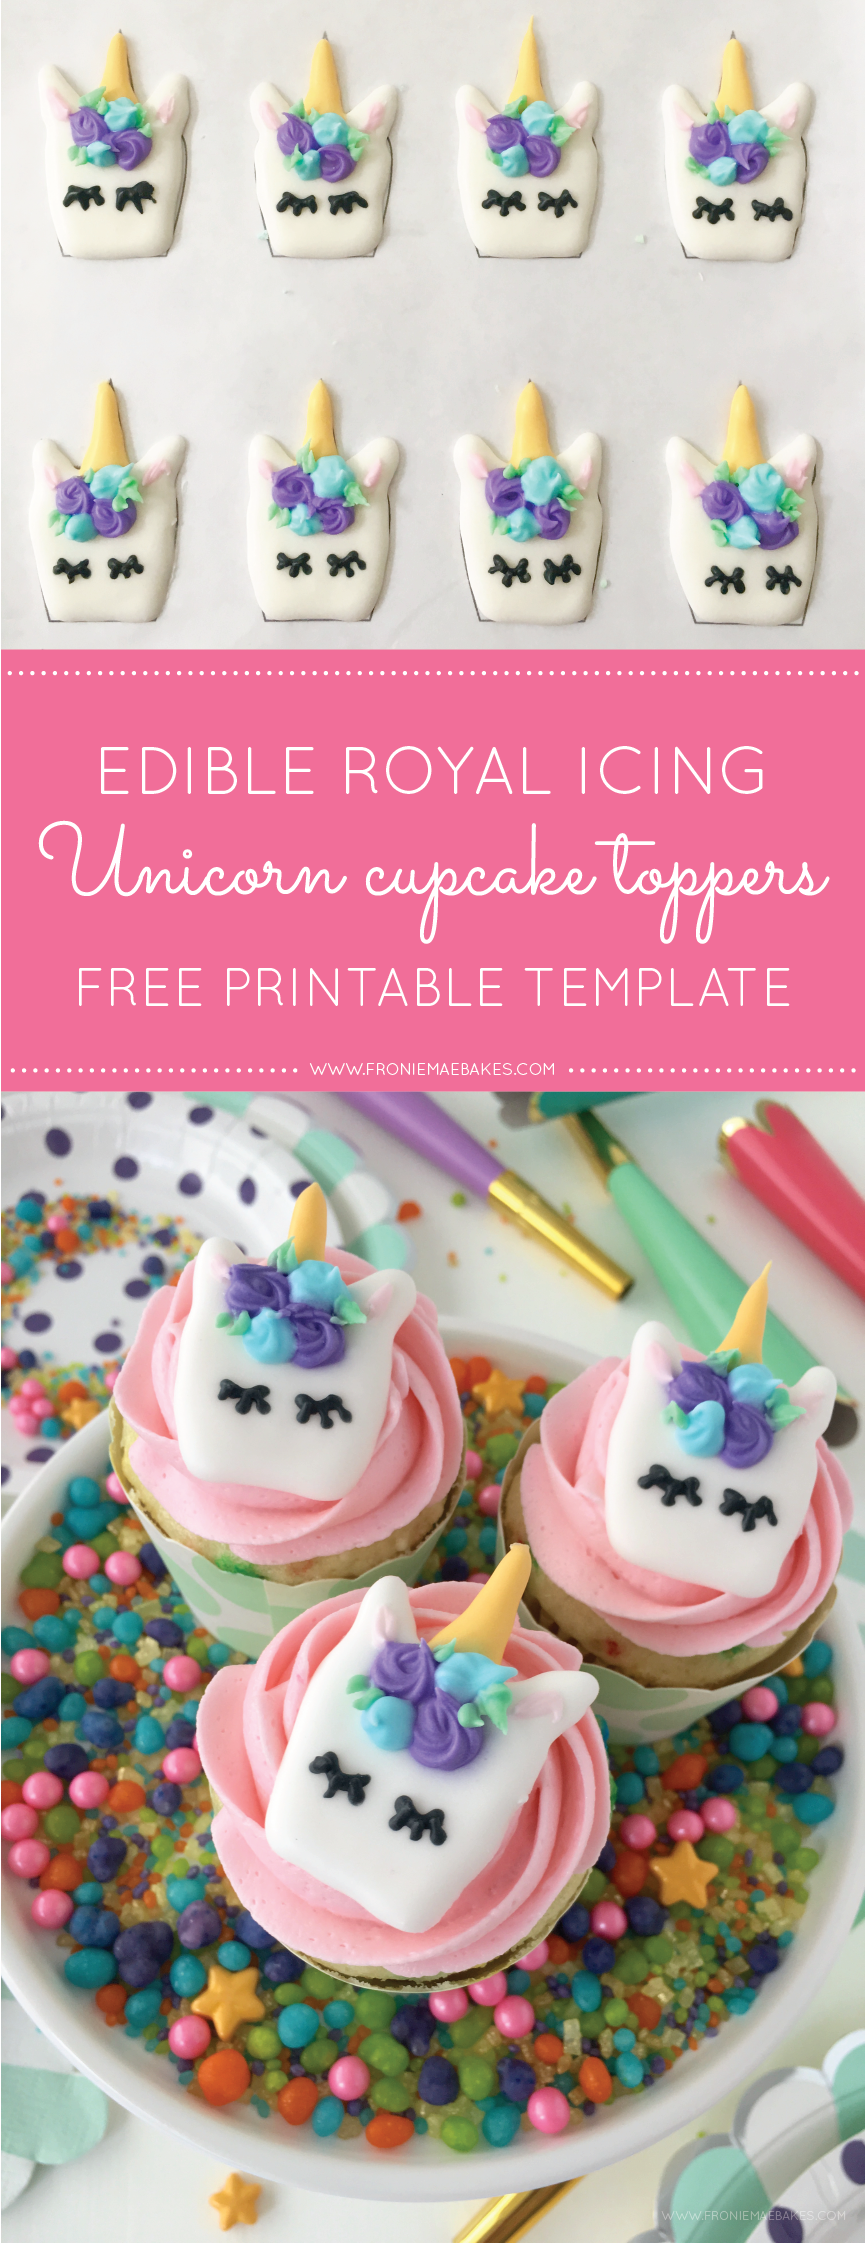 Hosting a Unicorn themed party? Make these Whimsical Royal Icing Unicorn Cupcake Toppers ahead of time with our FREE diy printable template on www.FronieMaeBakes.com